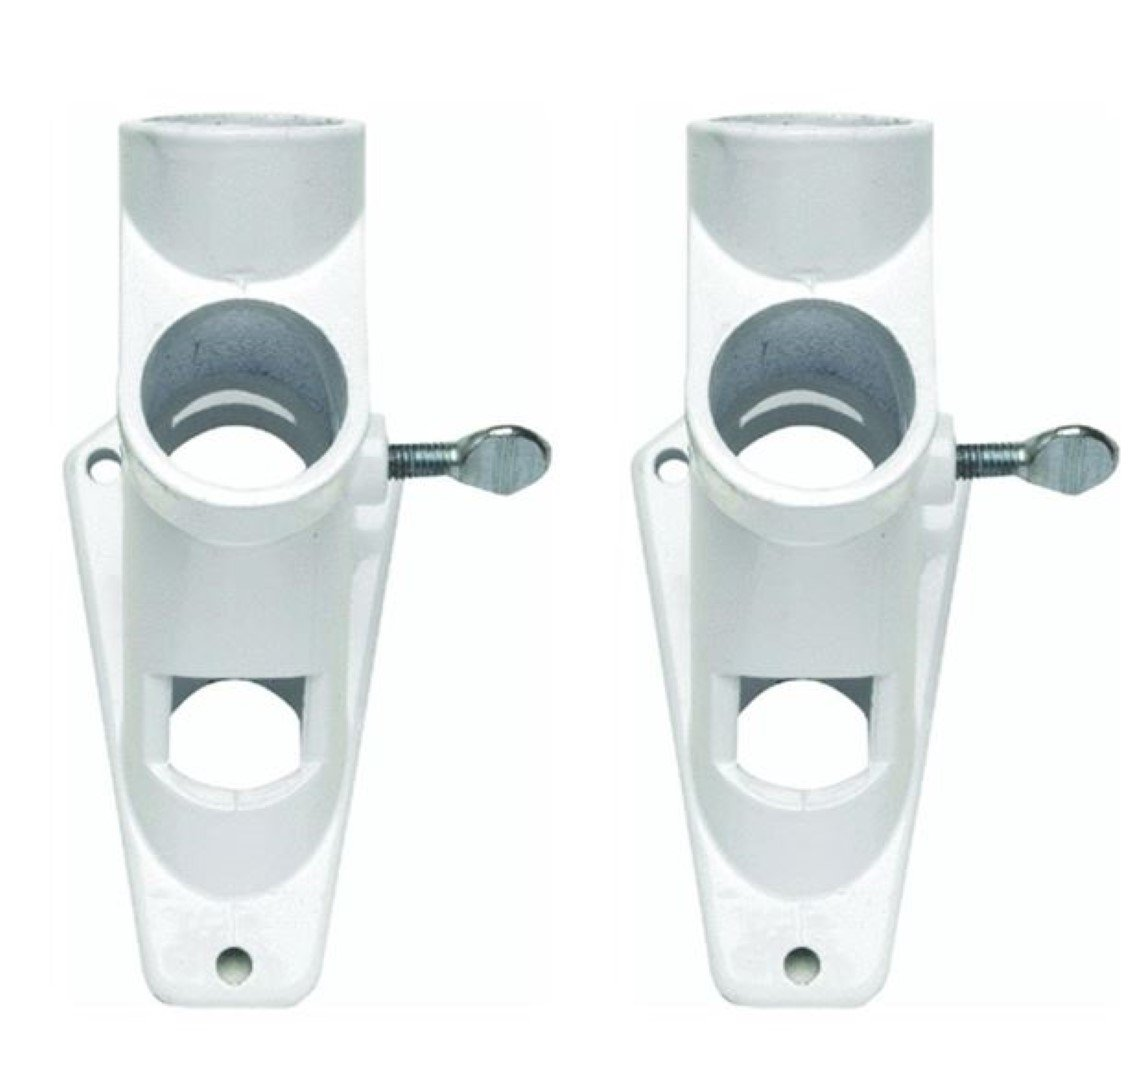 Valley Forge Flag 2 Position 1'' White Powder Coated Aluminum Flag Pole Bracket (2 Pack)